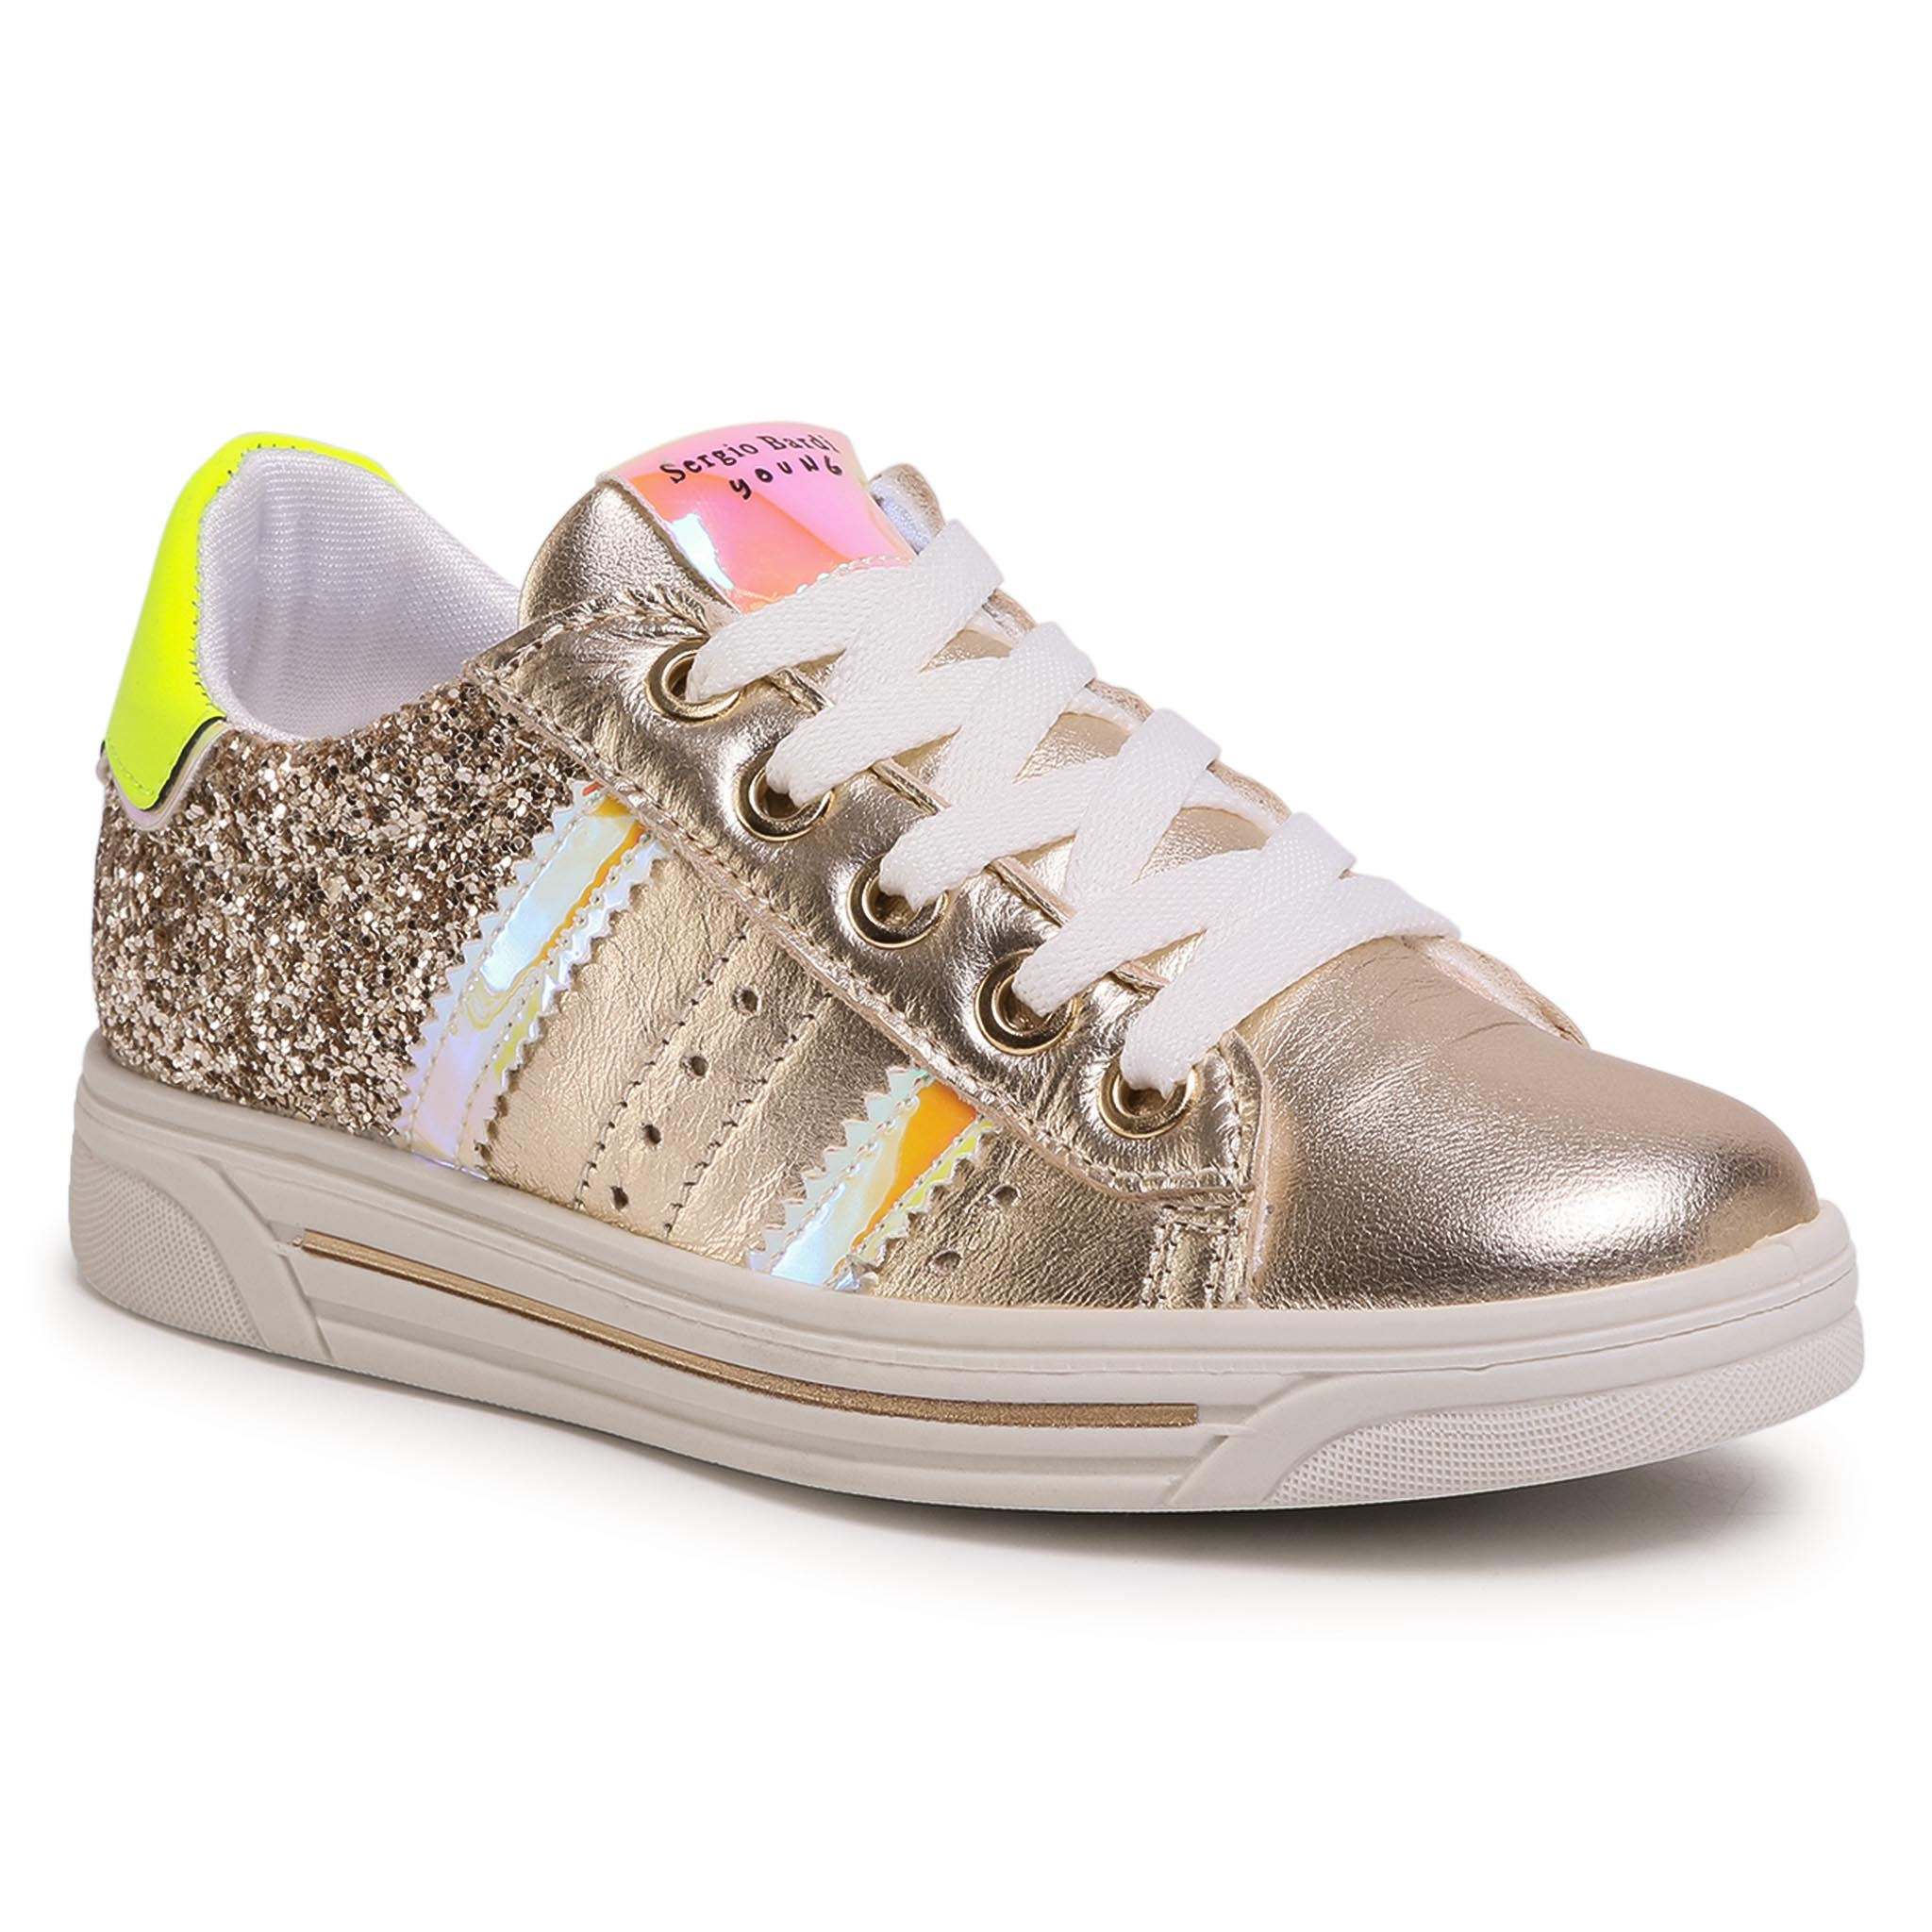 Sneakers SERGIO BARDI YOUNG - SBY-02-03-000027 611